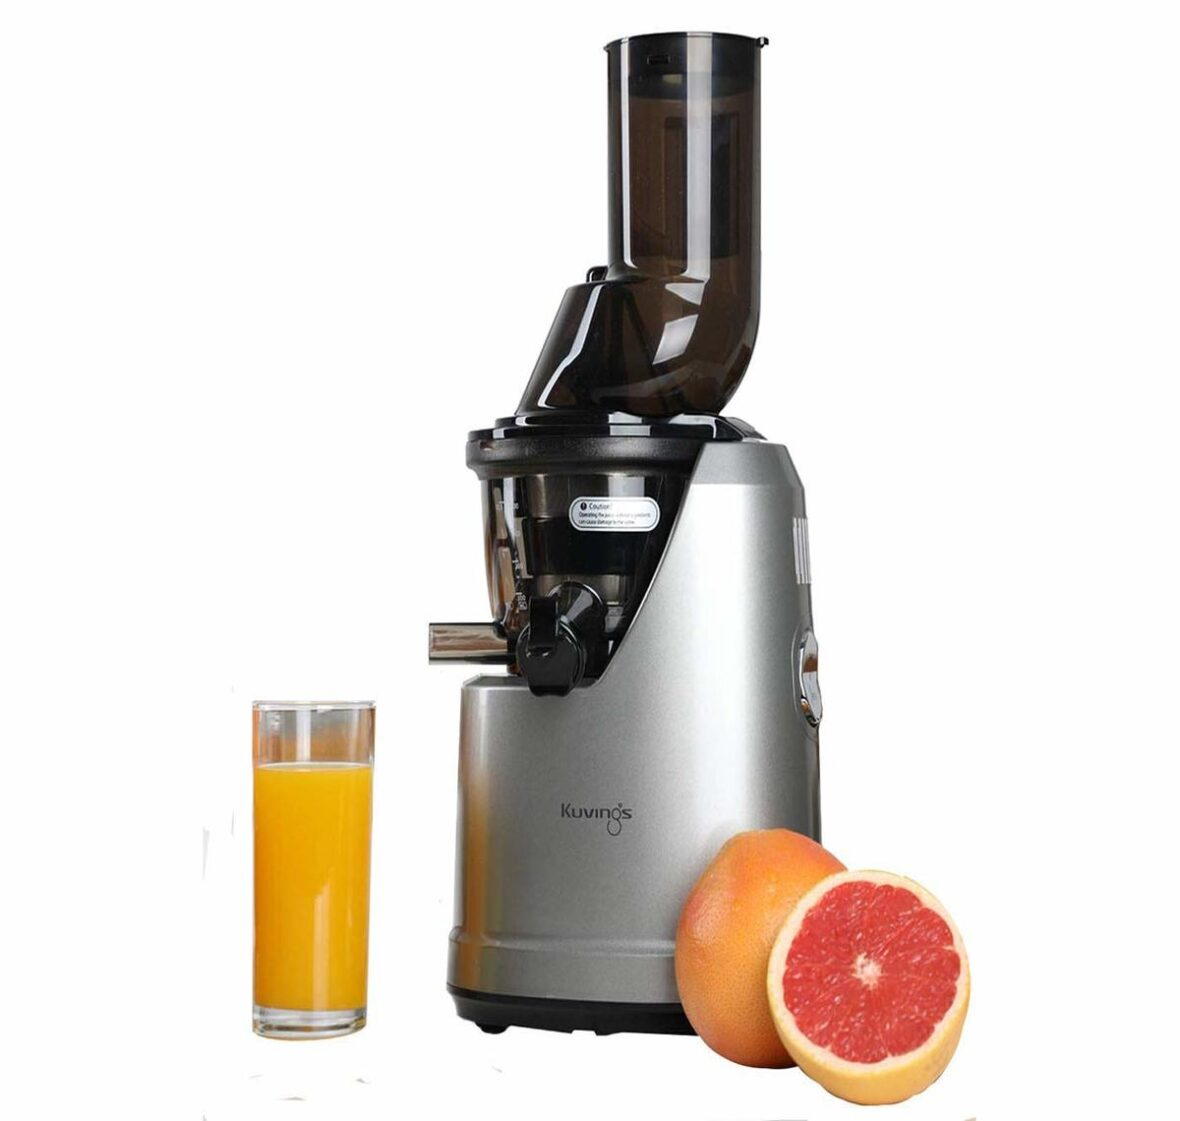 Kuvings Professional Cold Press Whole Slow Juicer (b1700) Review